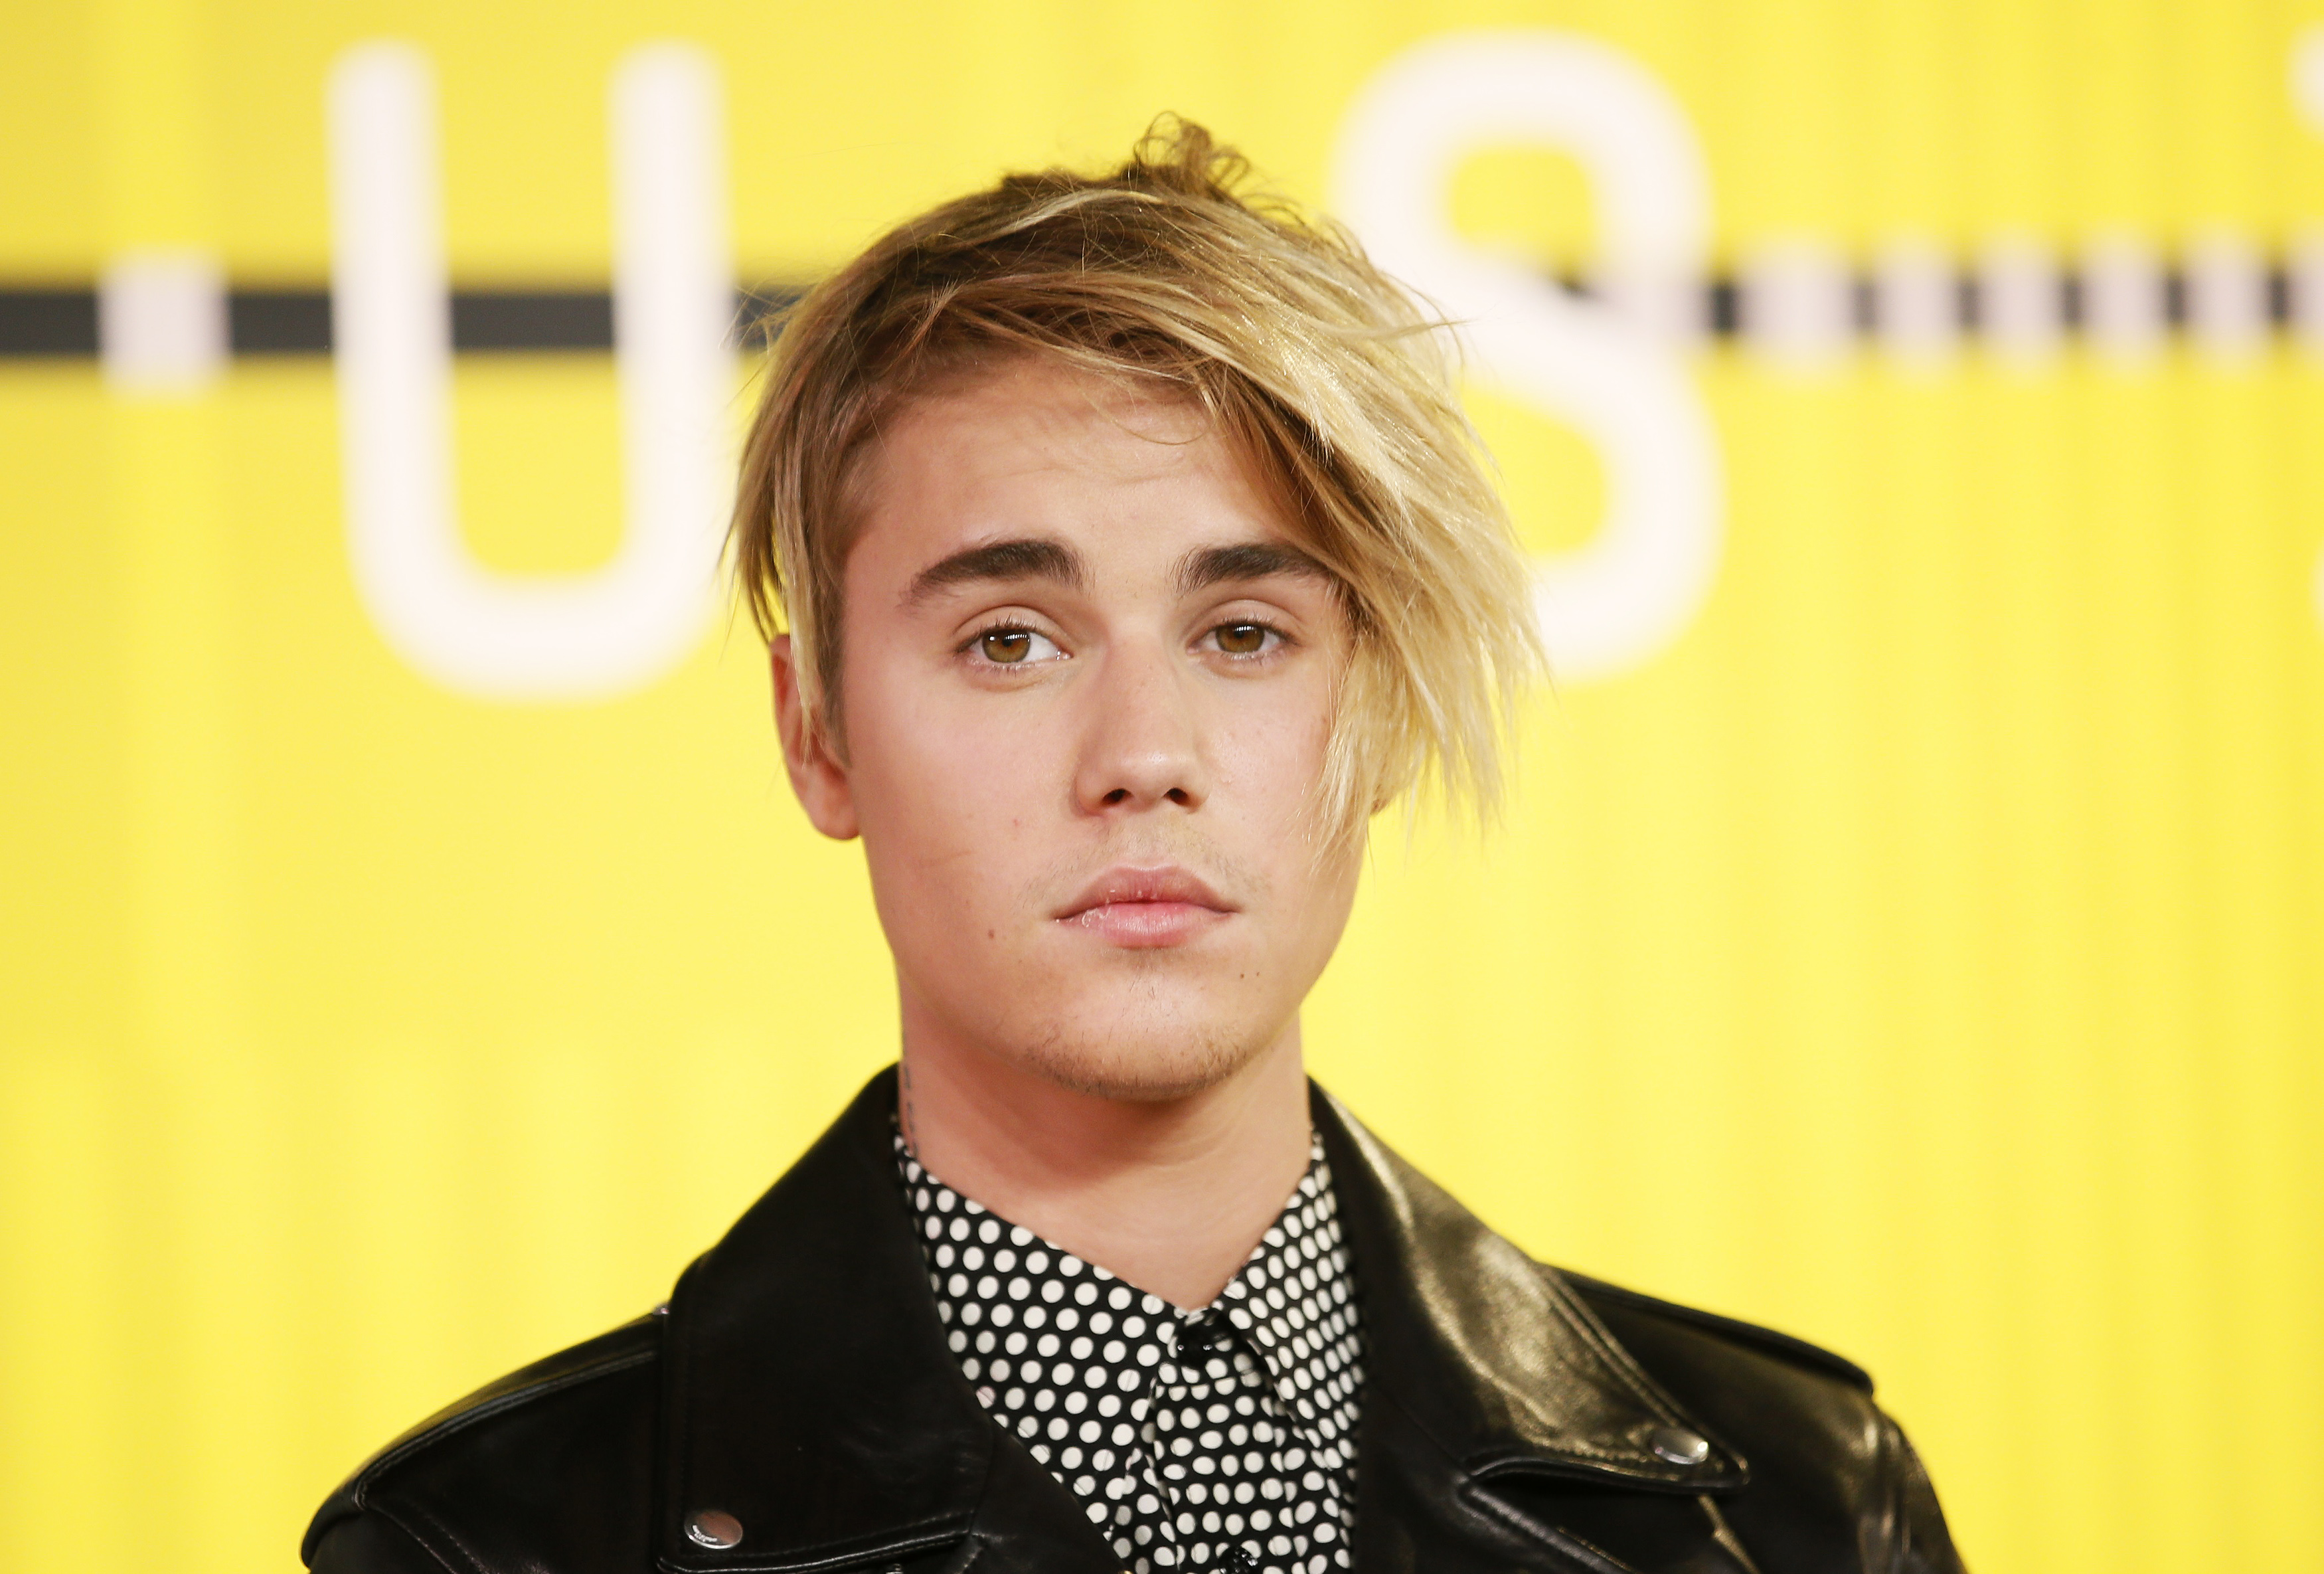 Justin Bieber in Dotted Shirt 531.93 Kb